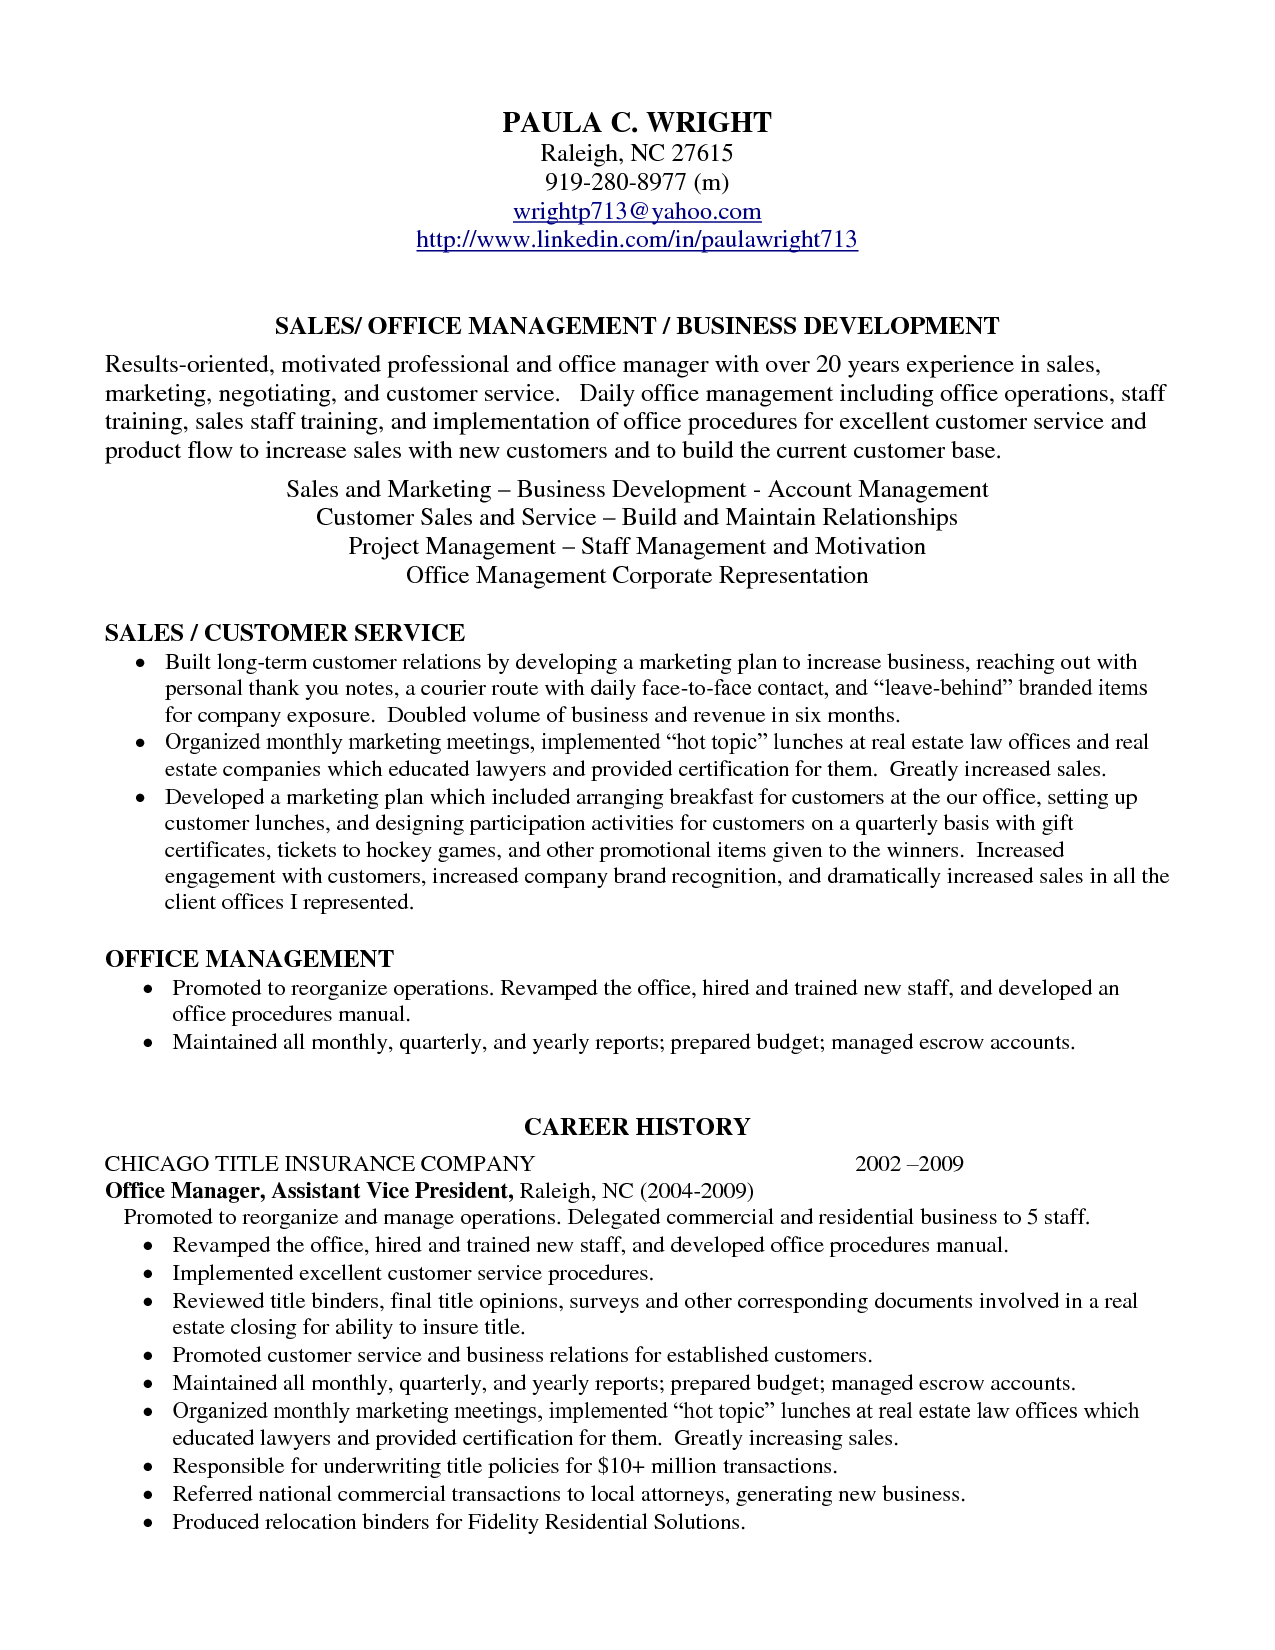 Wonderful Resume Writing And Profile On A Resume